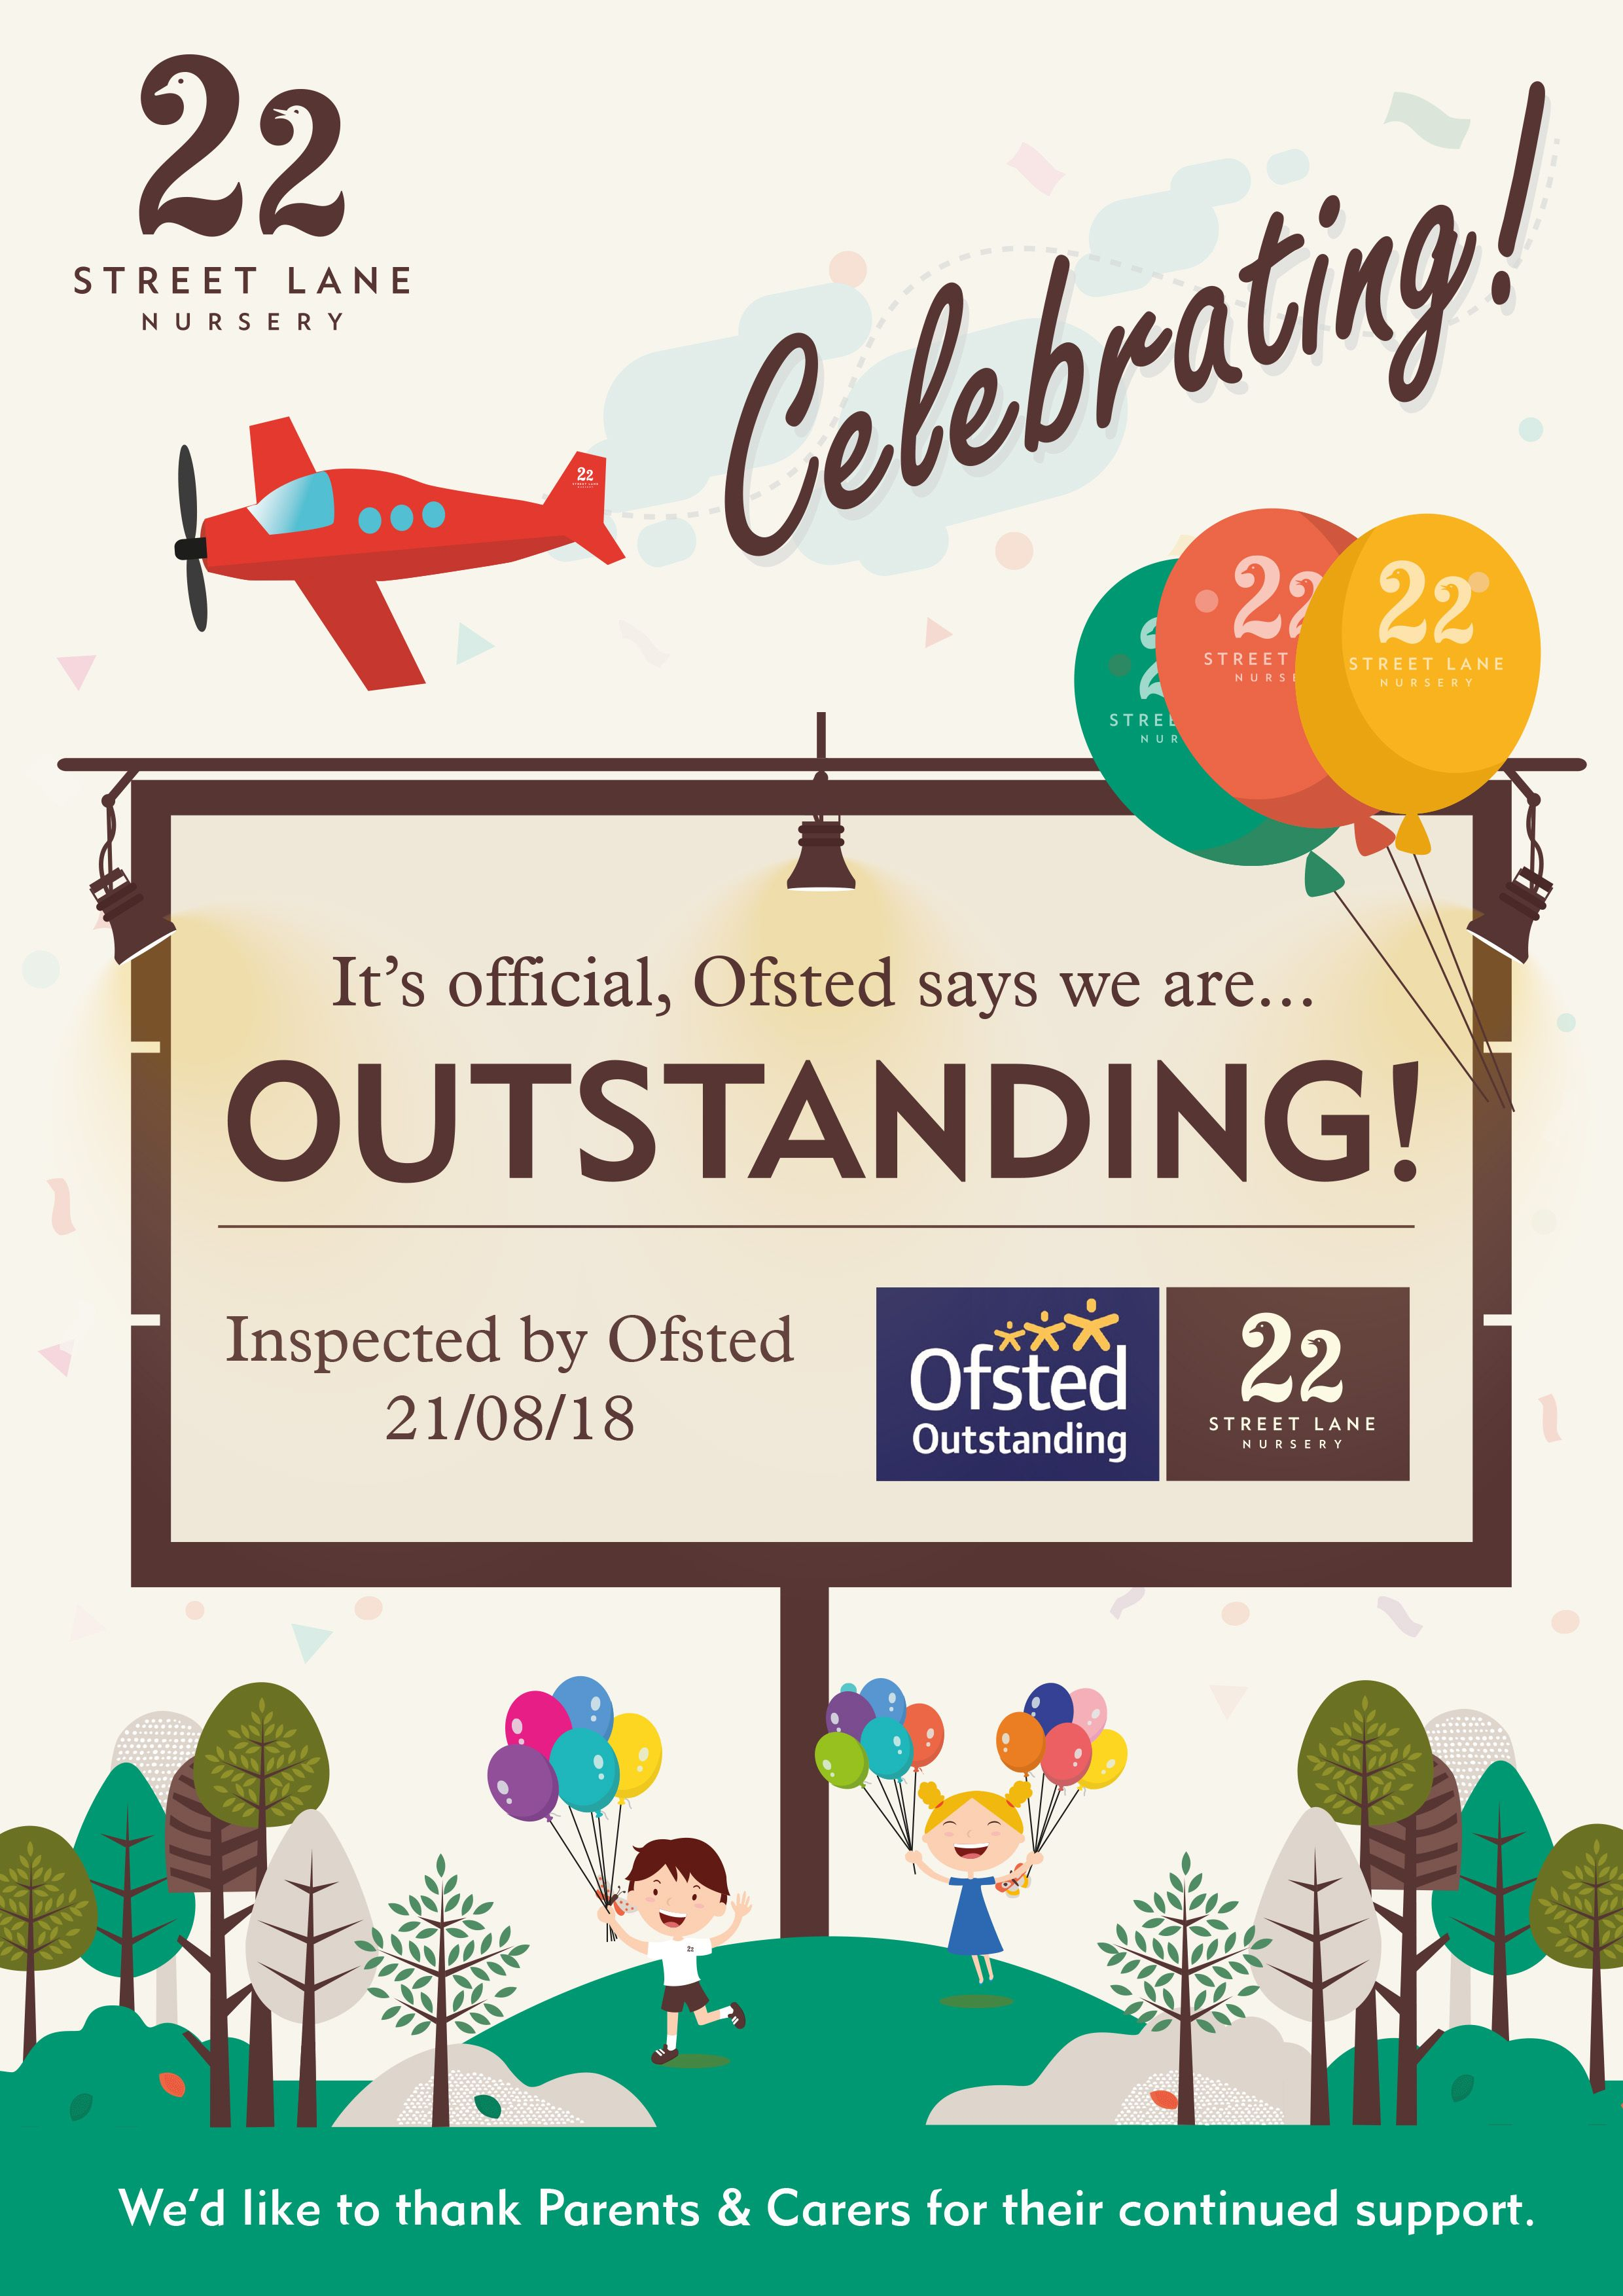 Ofsted Outstanding Poster Designed By The Marketing Team At 22 Street Lane Nursery 22streetlanenursery Posterdes Nursery Poster Nursery Poster Design